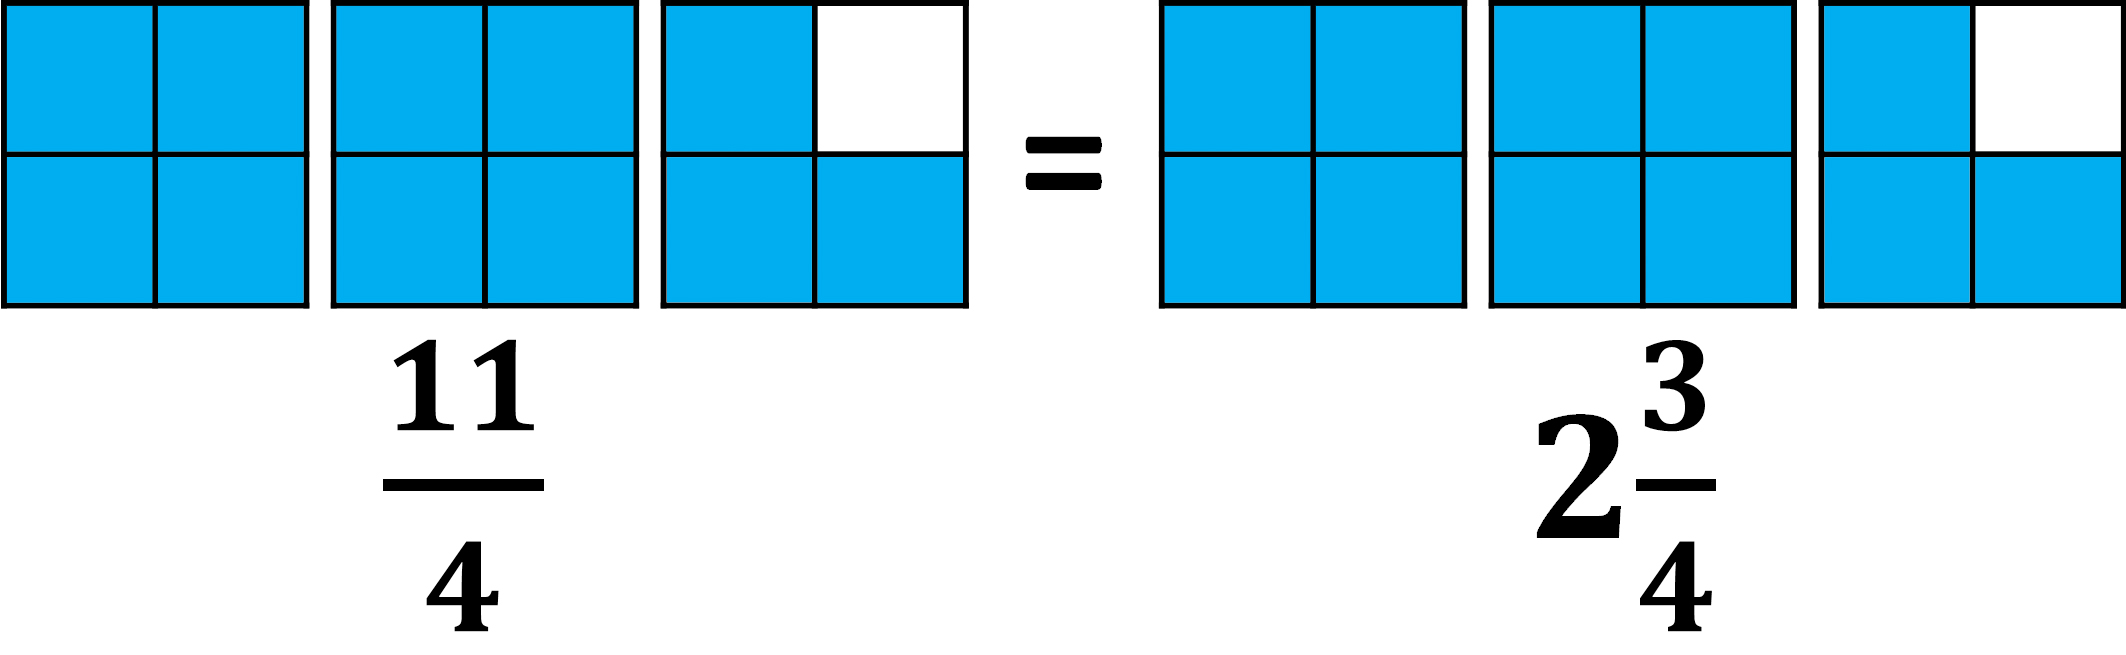 eleven-fourths is equal to 2 and three-fourths